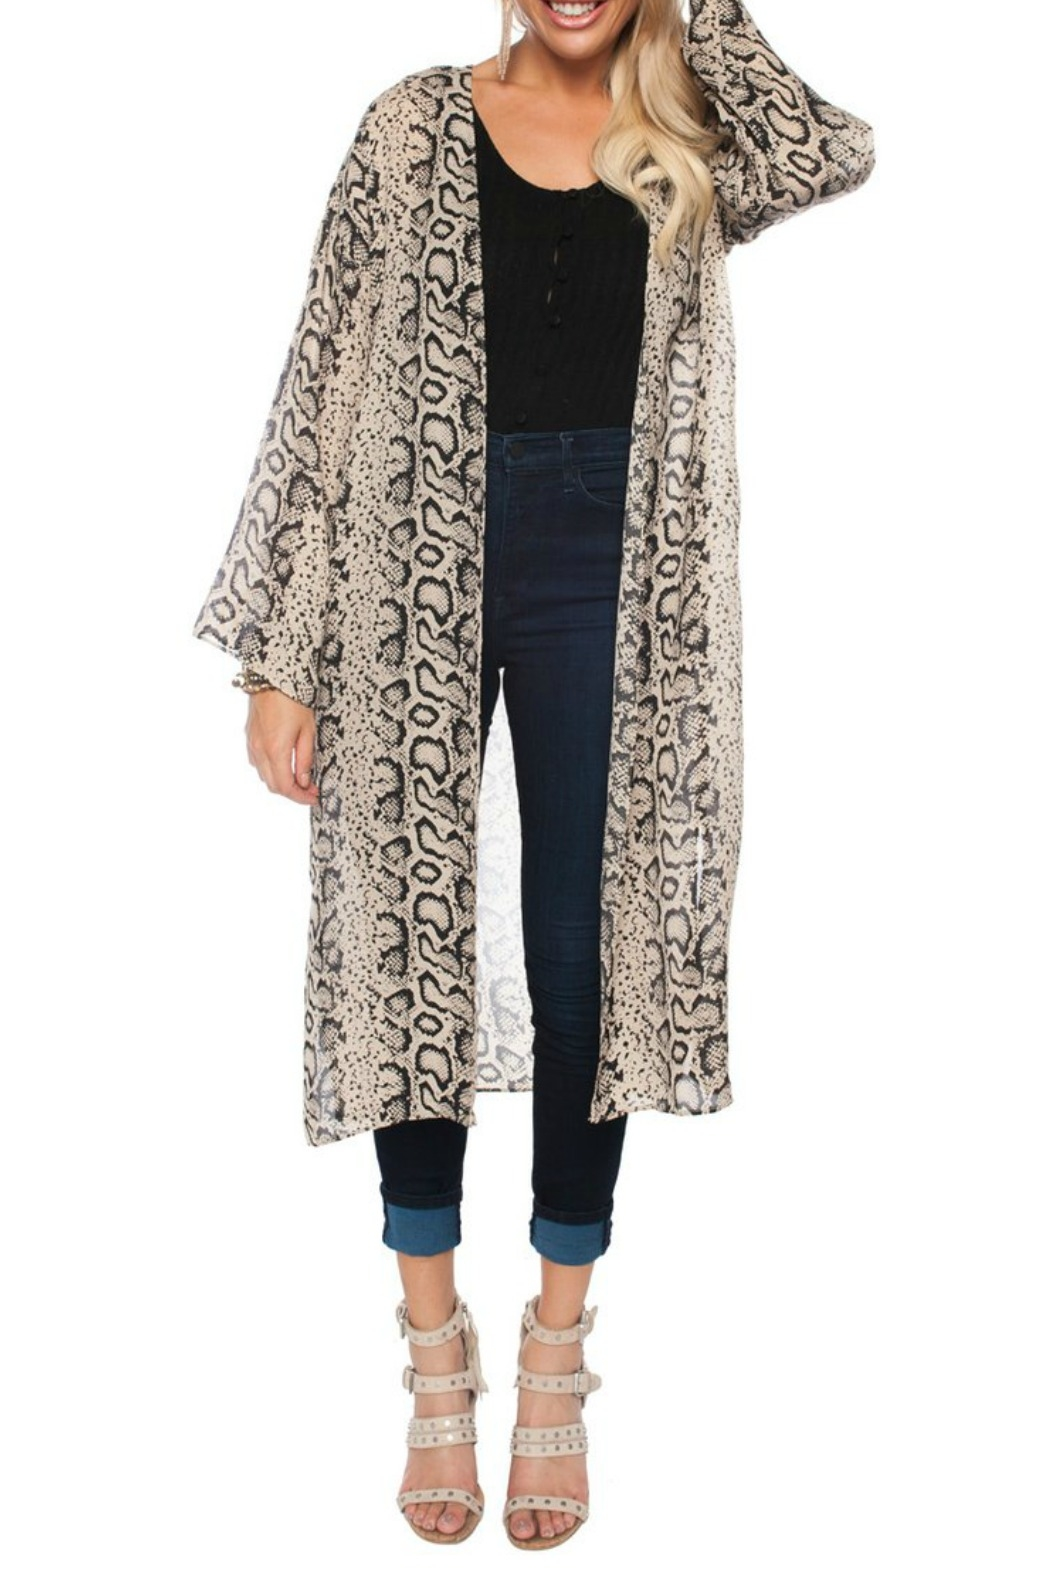 Buddy Love Snake Print Duster - Main Image